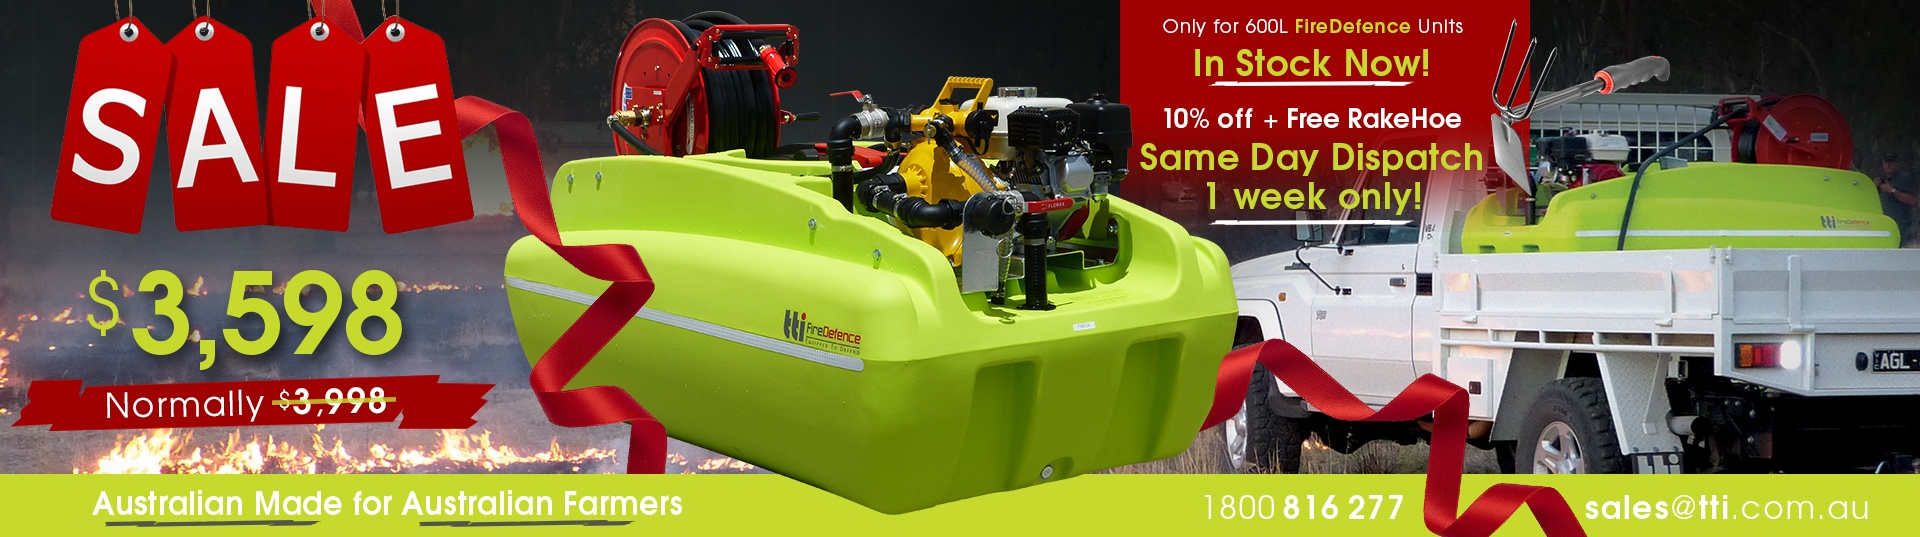 fire defence tti sales catalogue fire fighting equipment tank tanks trailers australia summer deals 2018 on sale